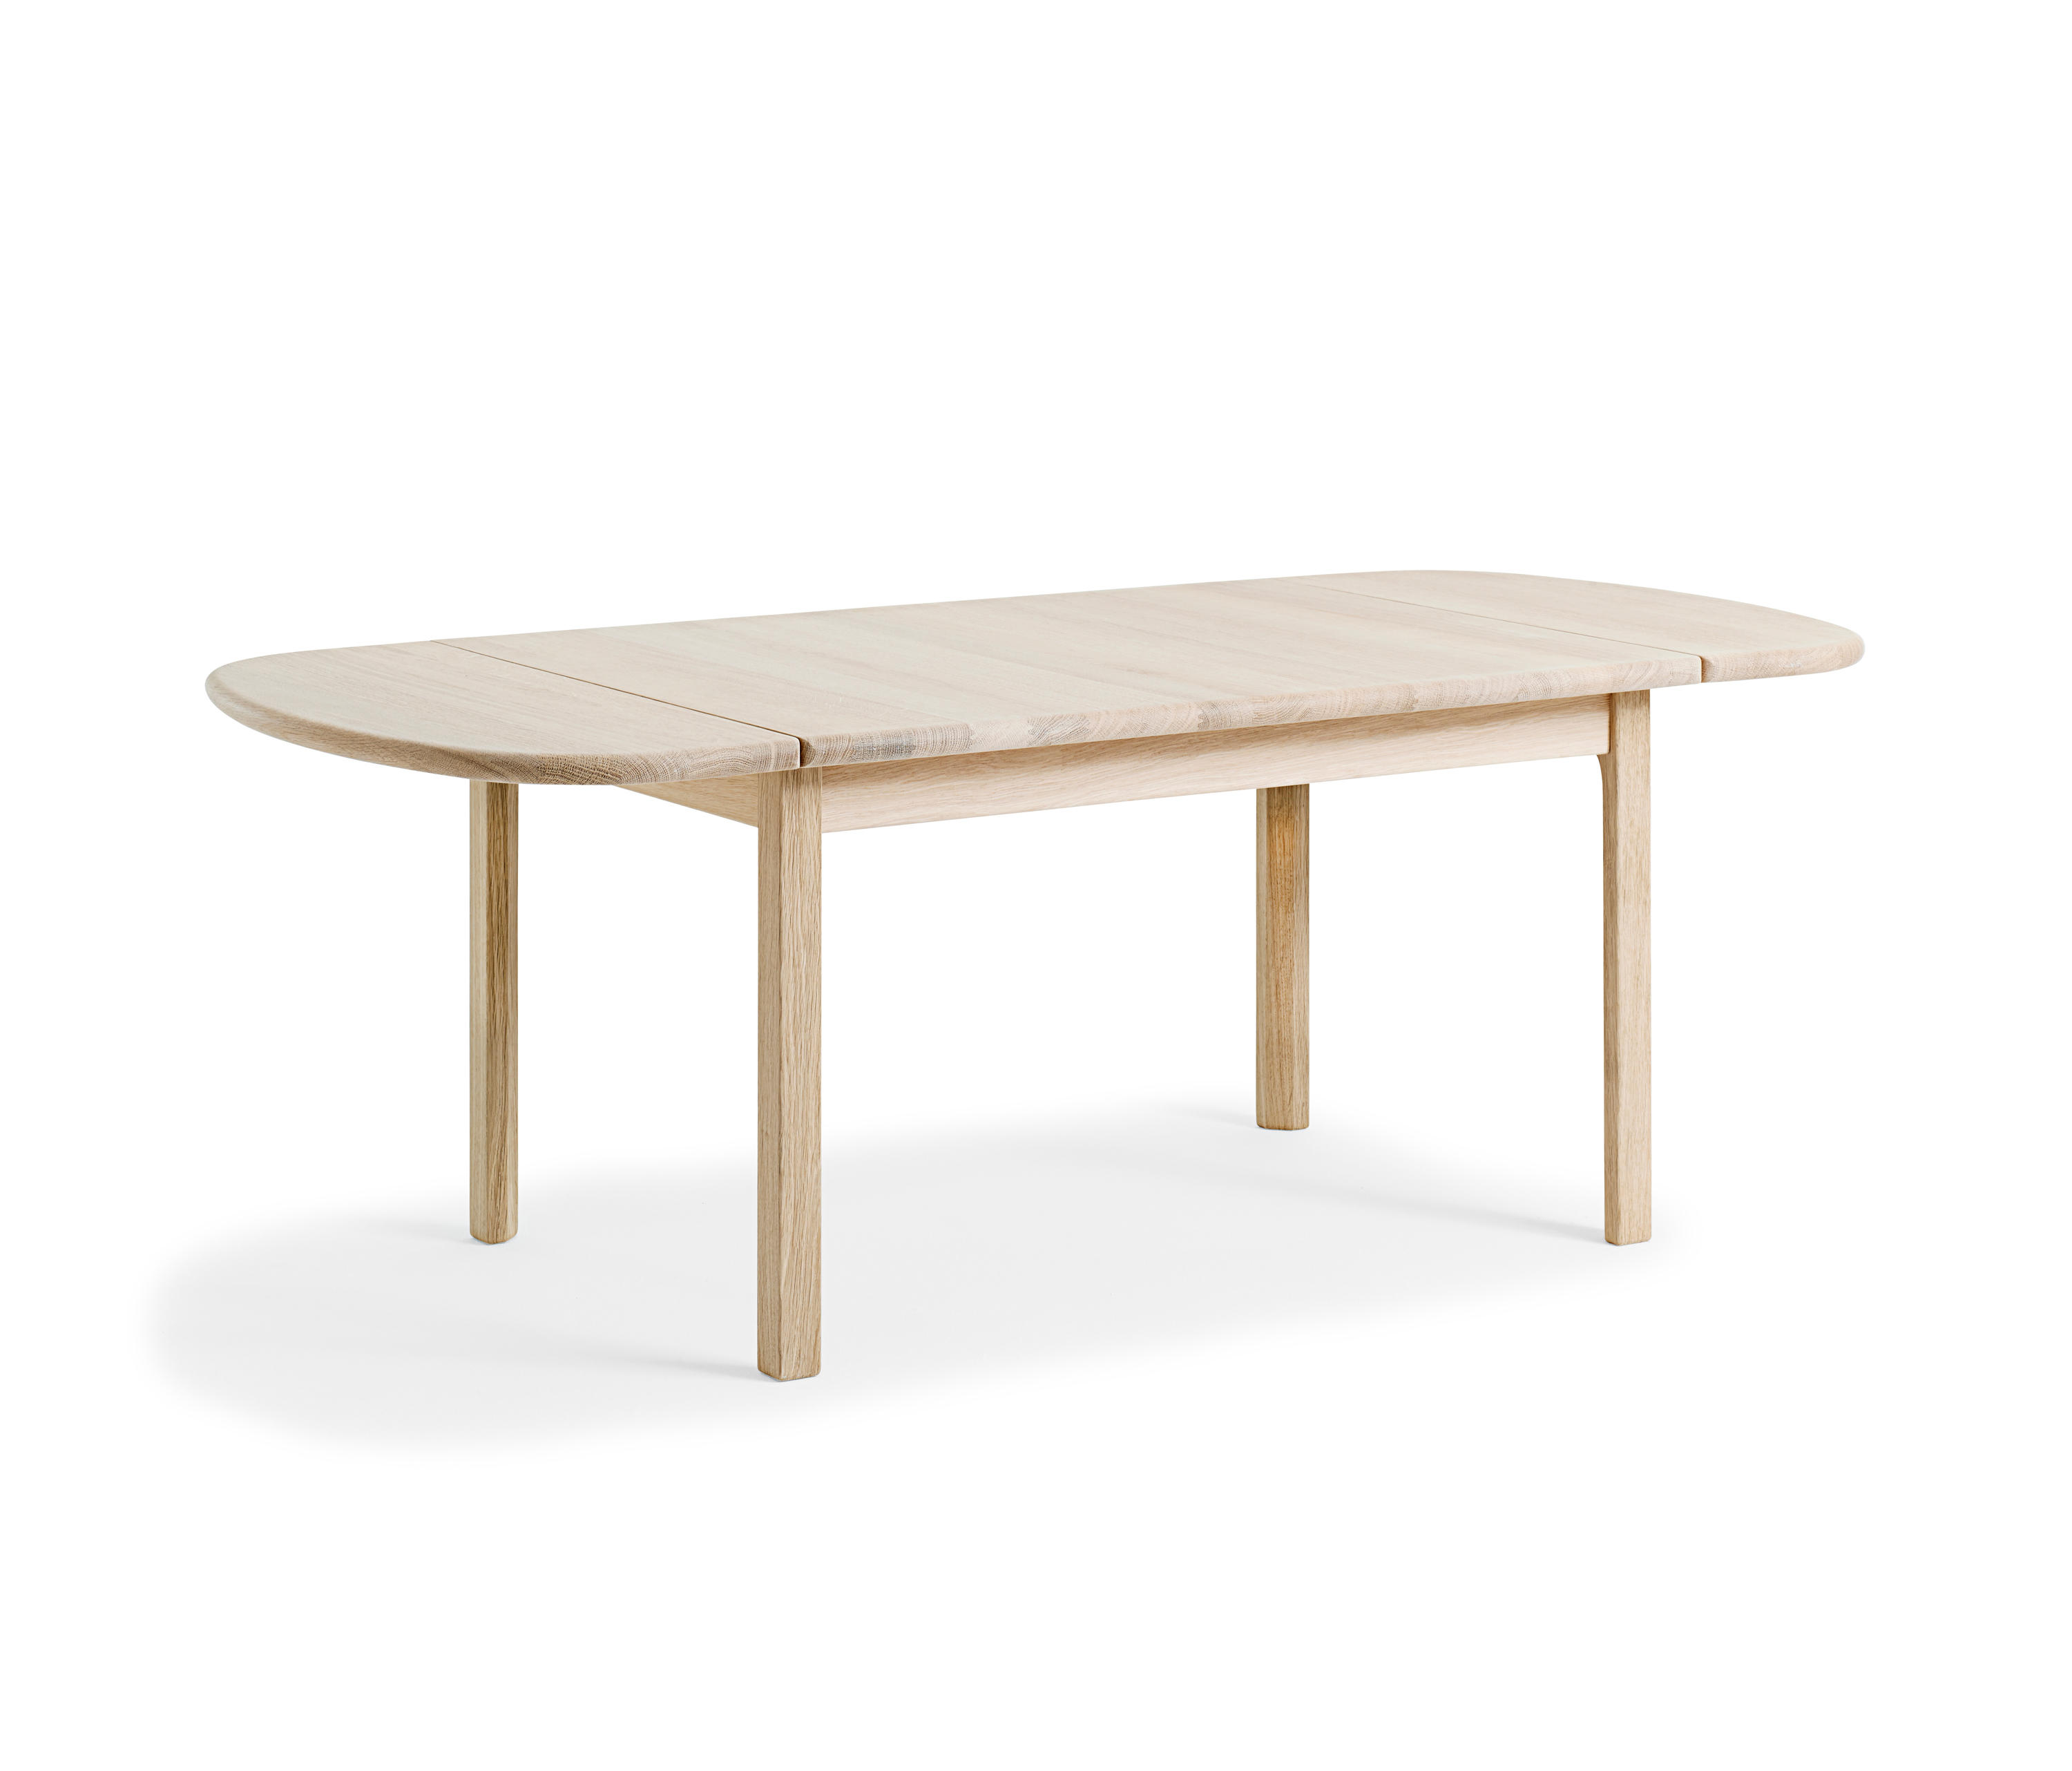 ge 82 85 coffee table lounge tables from getama danmark